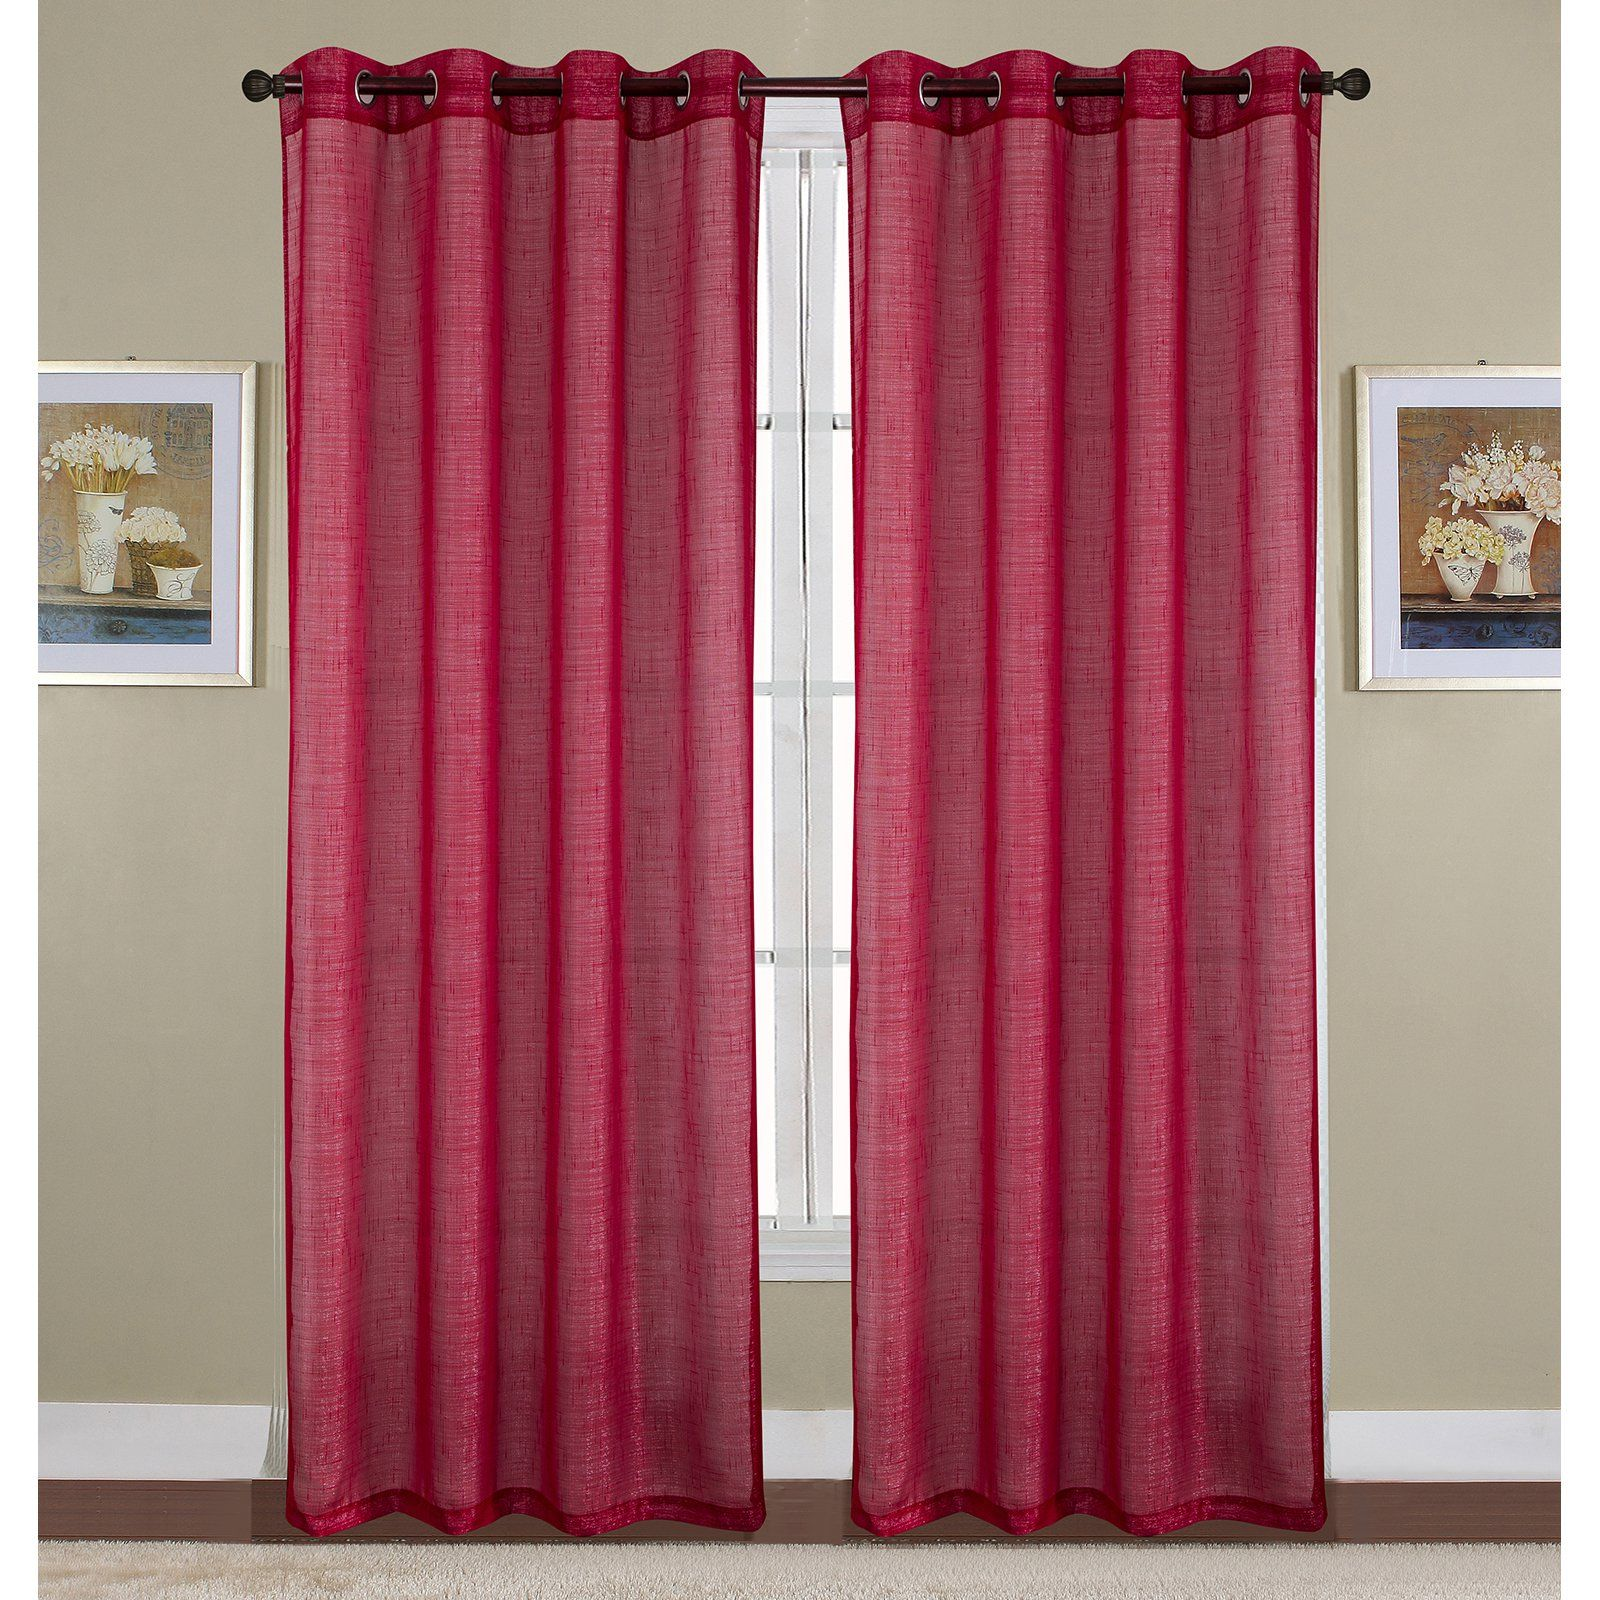 Rt Designers Collection Sparkle Woven Lurex Grommet Curtain Panel